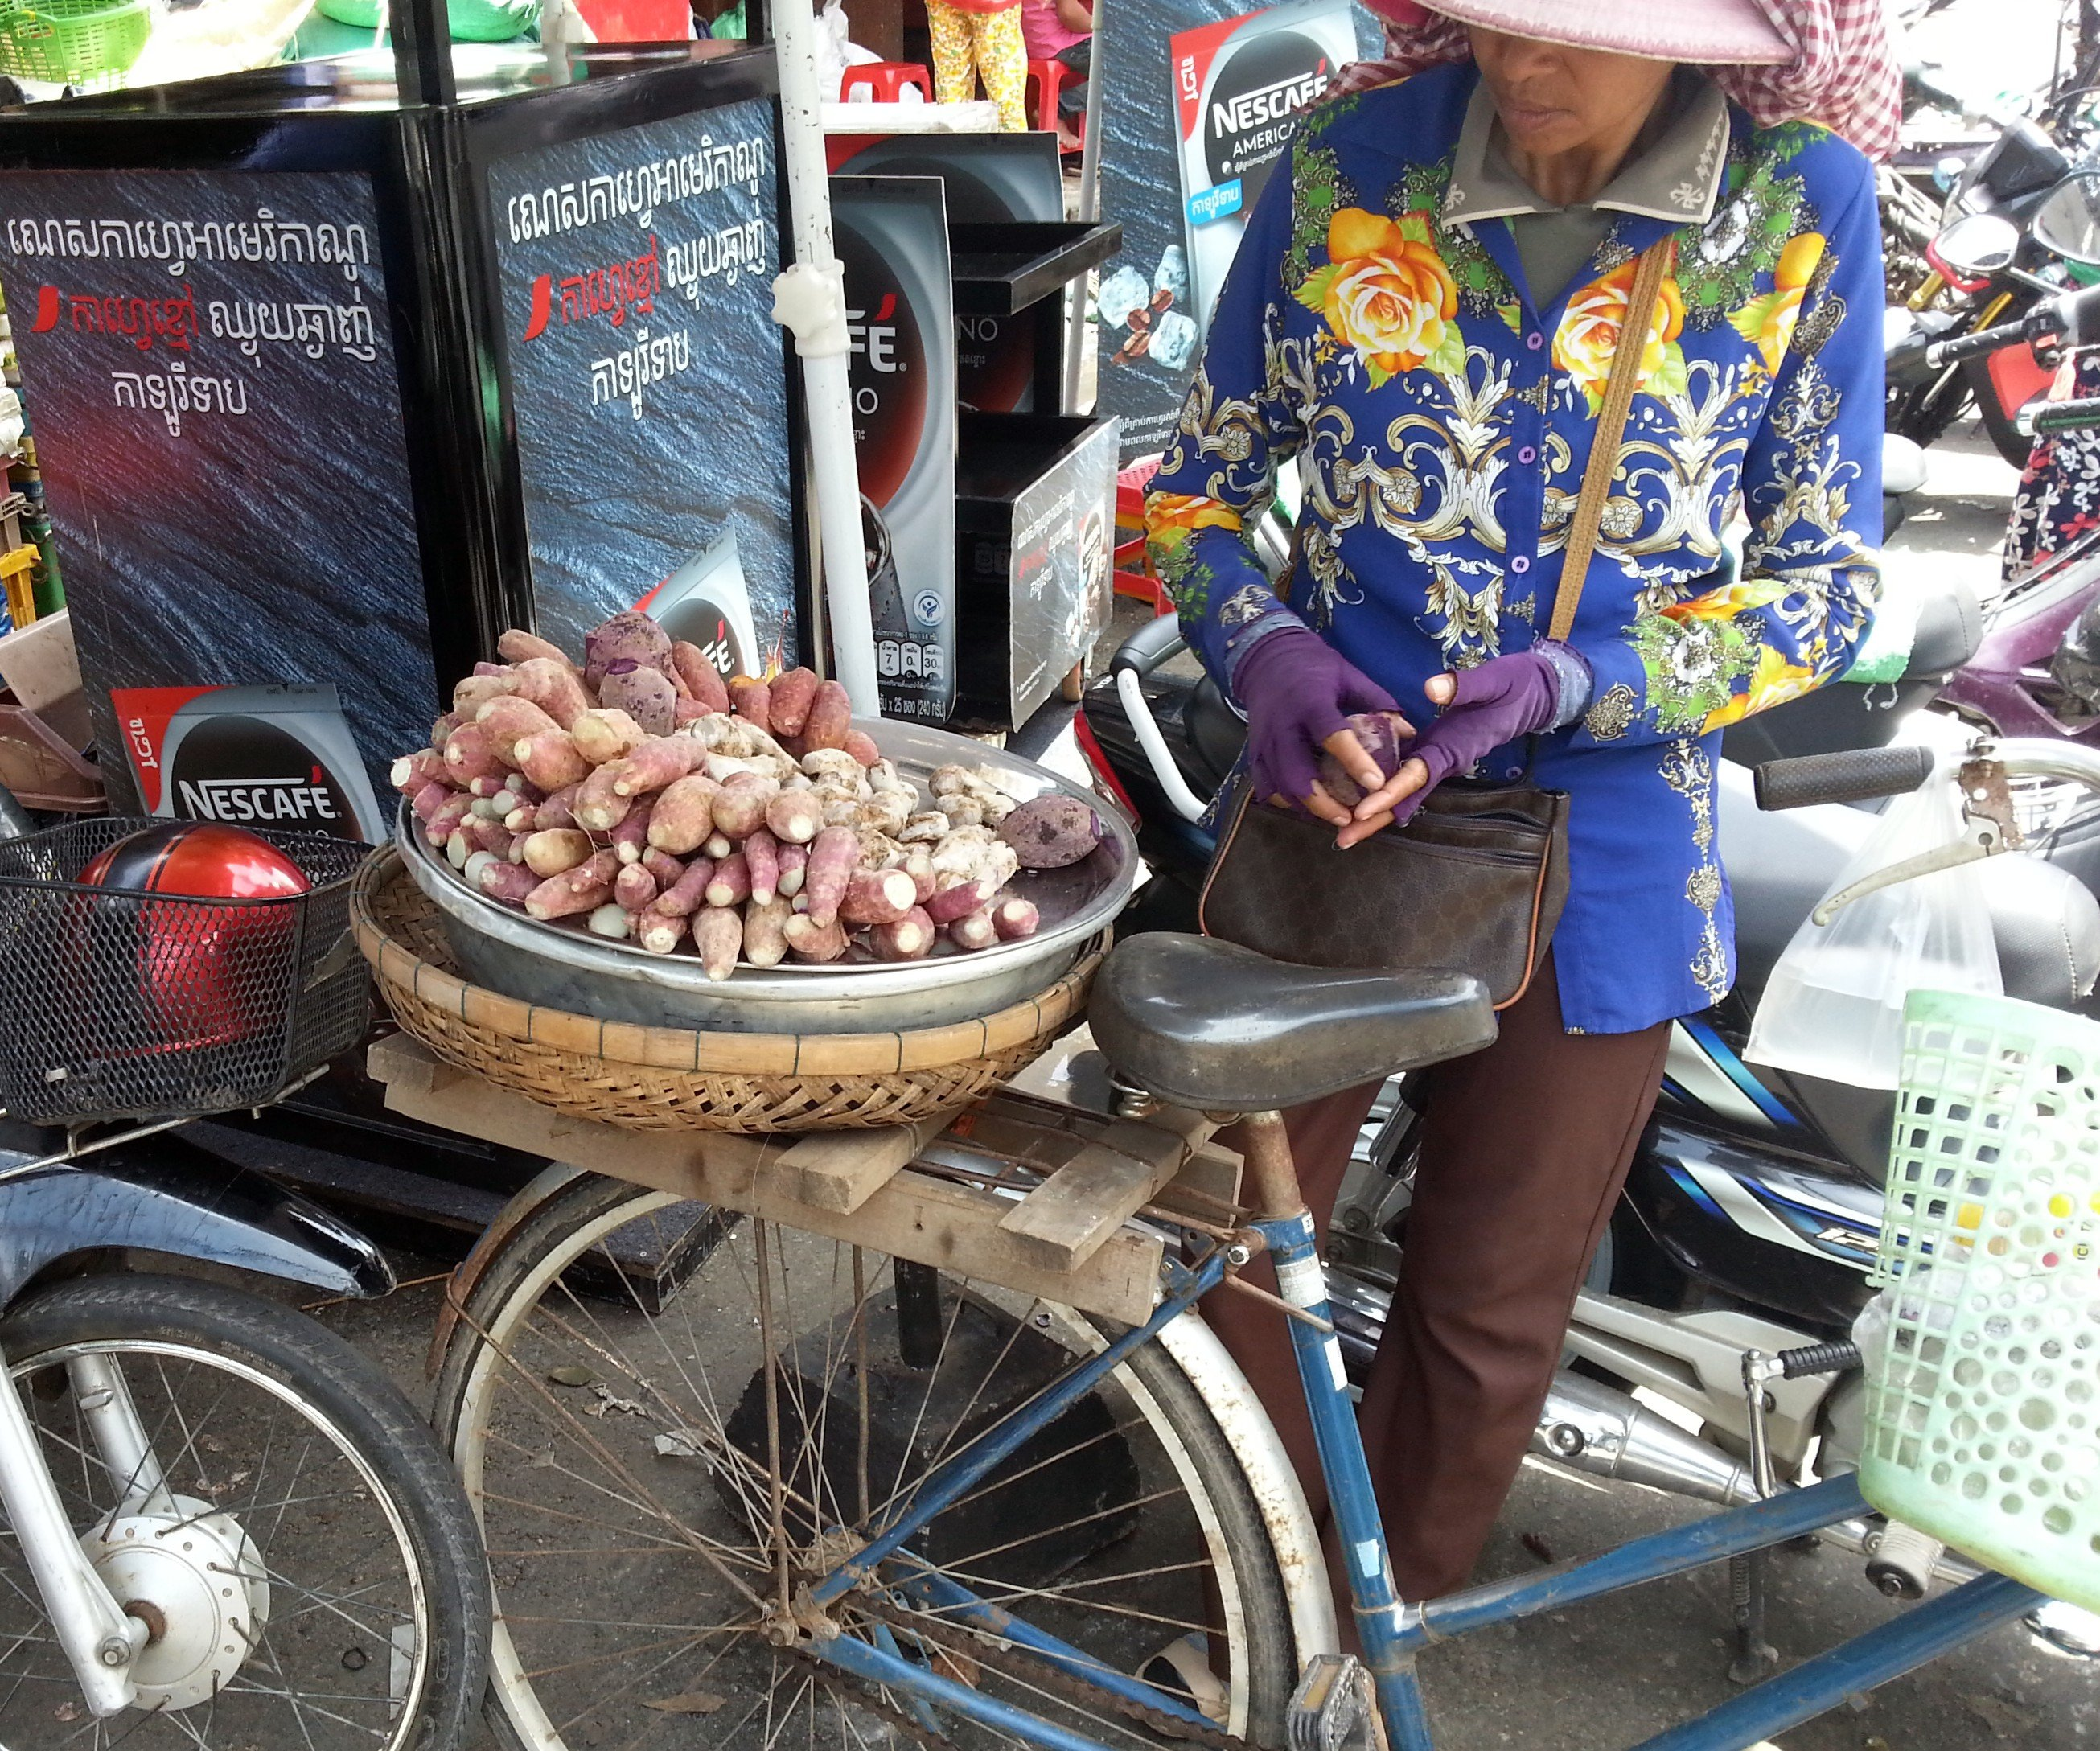 Steamed sweet potatoes sold from the back of a bike